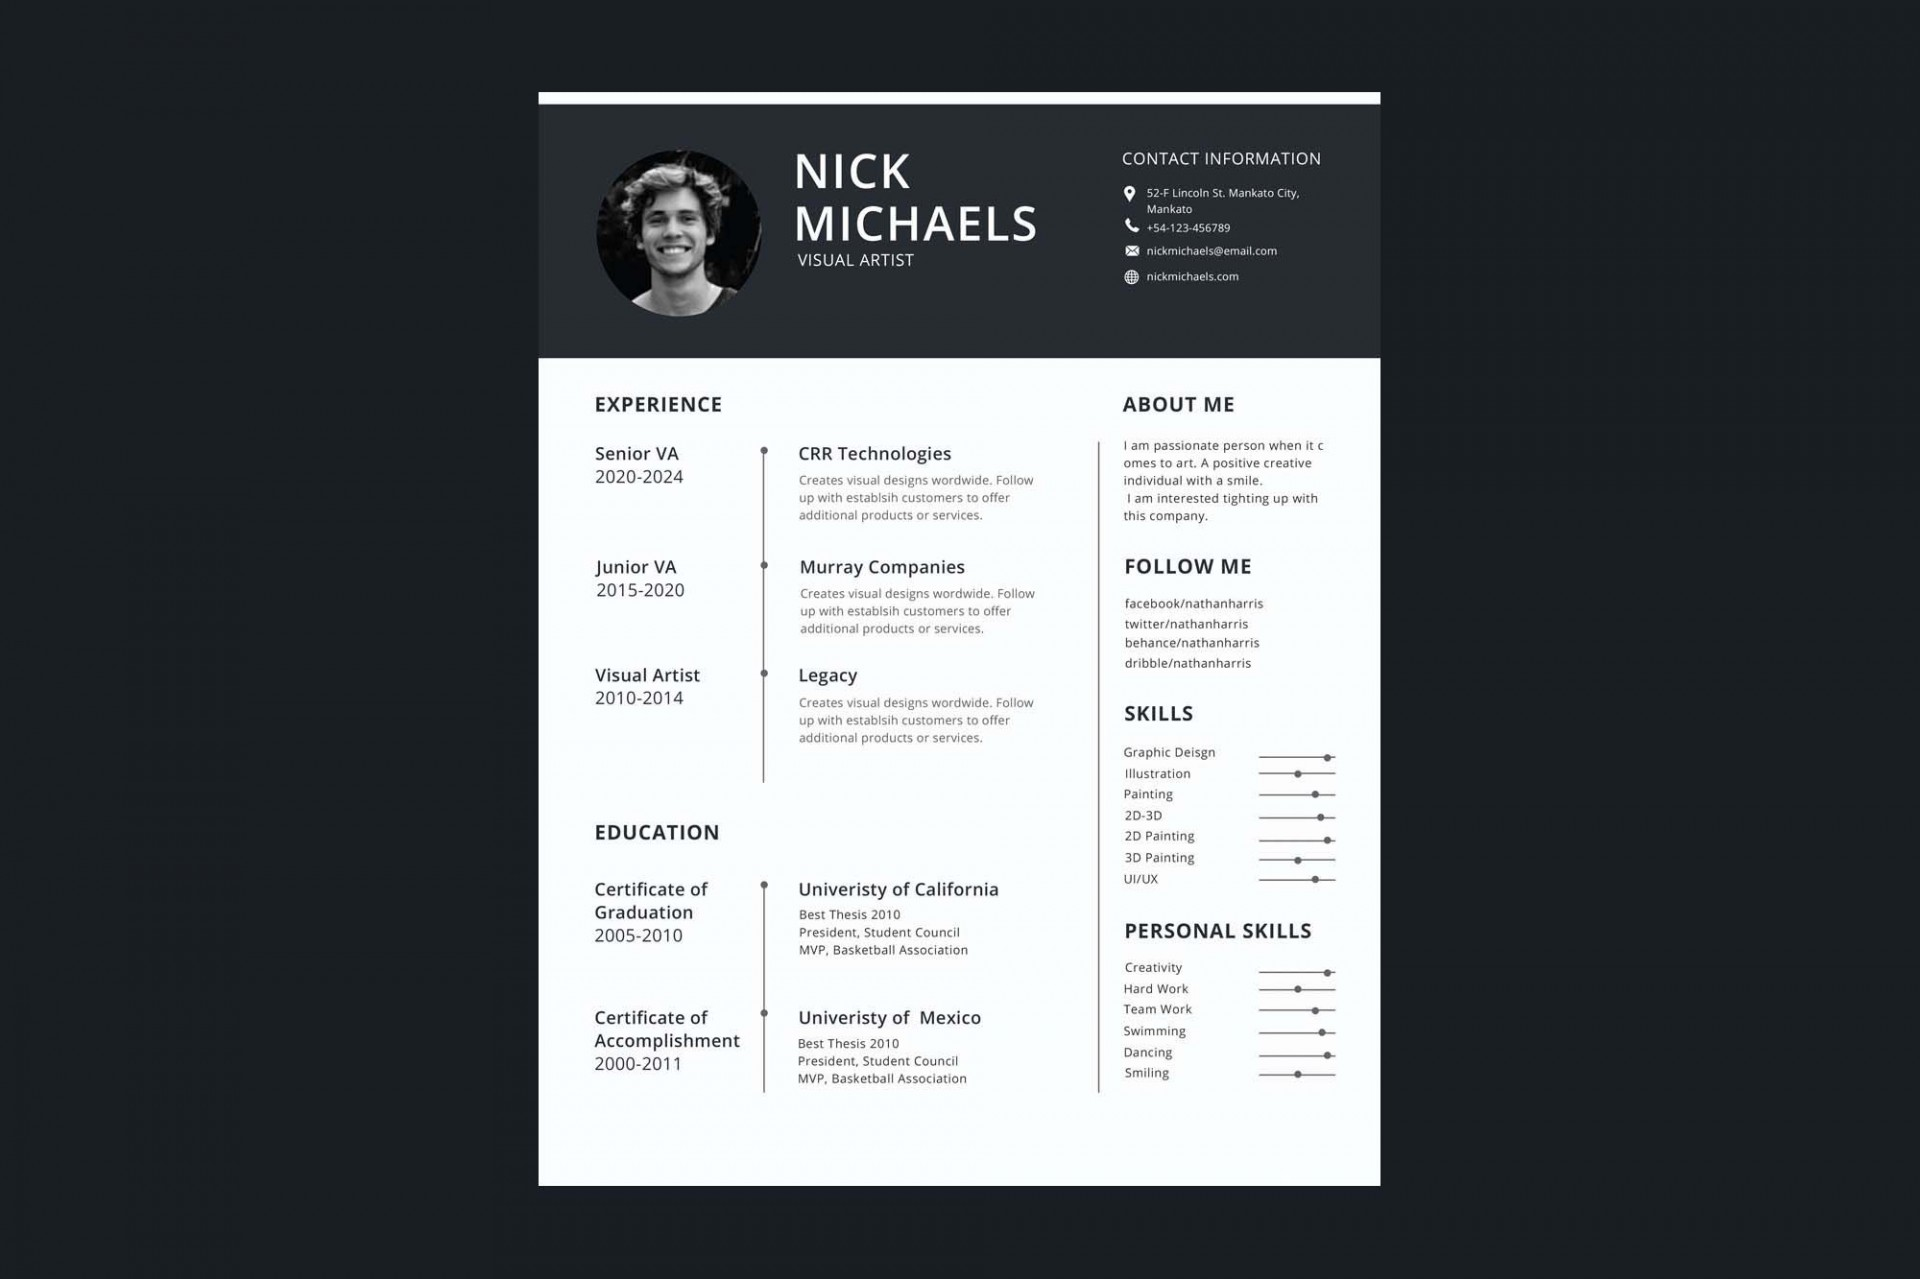 006 Formidable 1 Page Resume Template Highest Quality  Templates One Basic Word Free Html Download1920